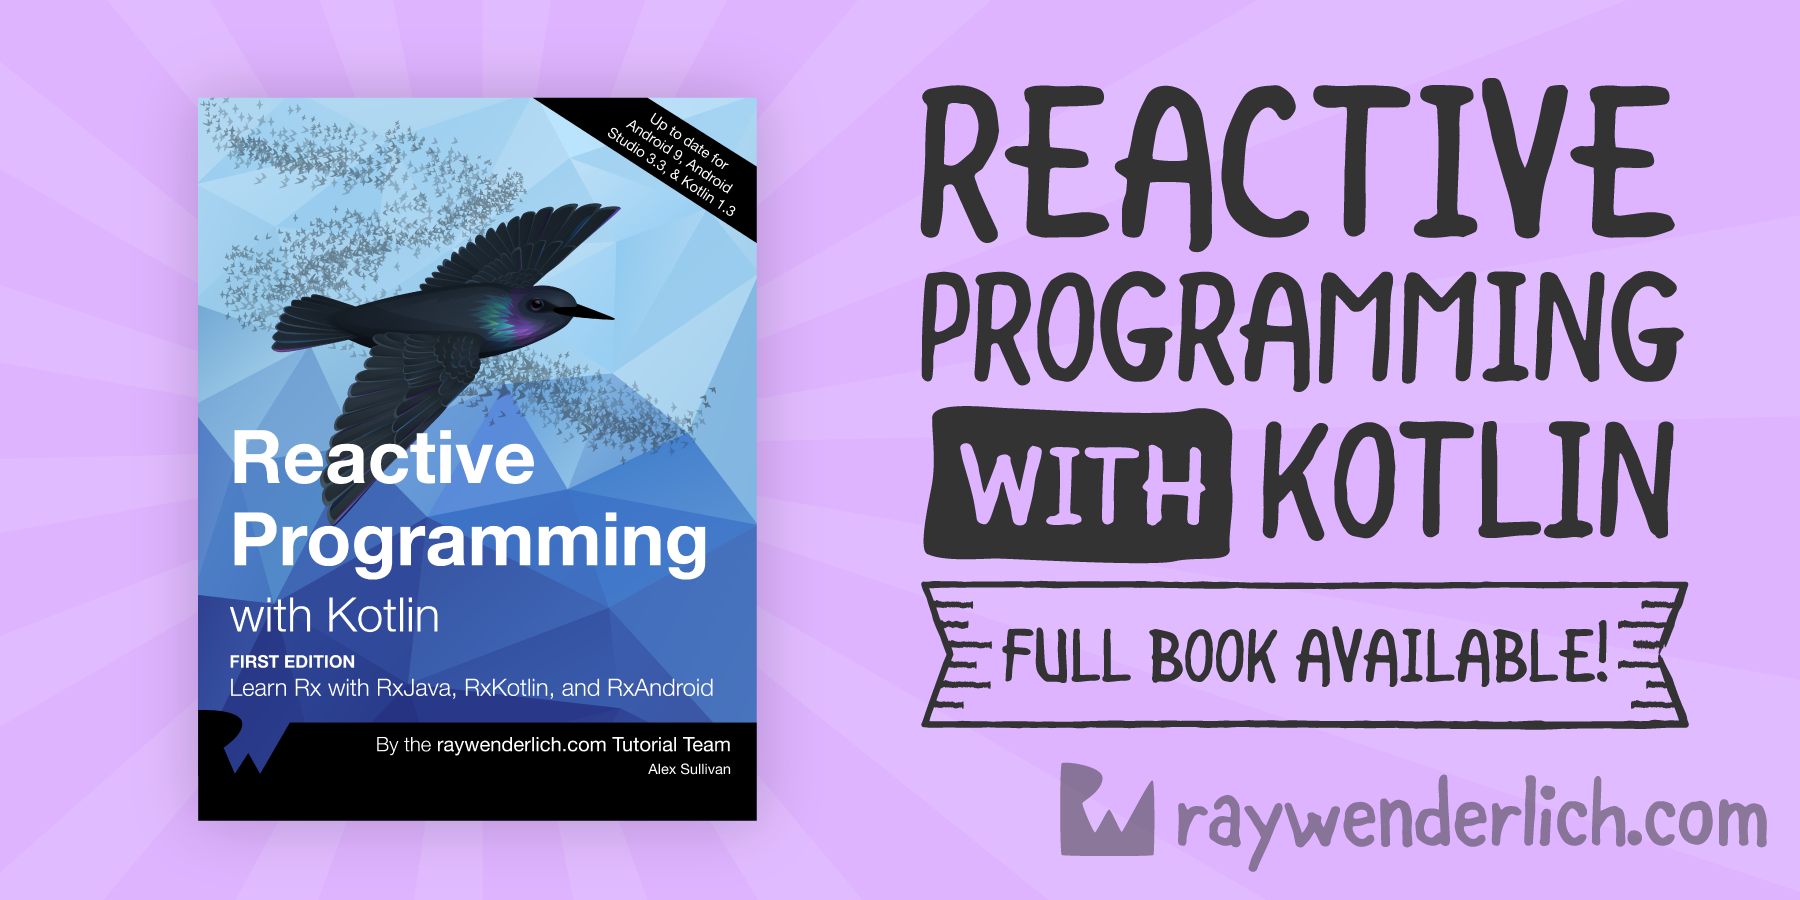 Reactive Programming with Kotlin: Complete Book Available